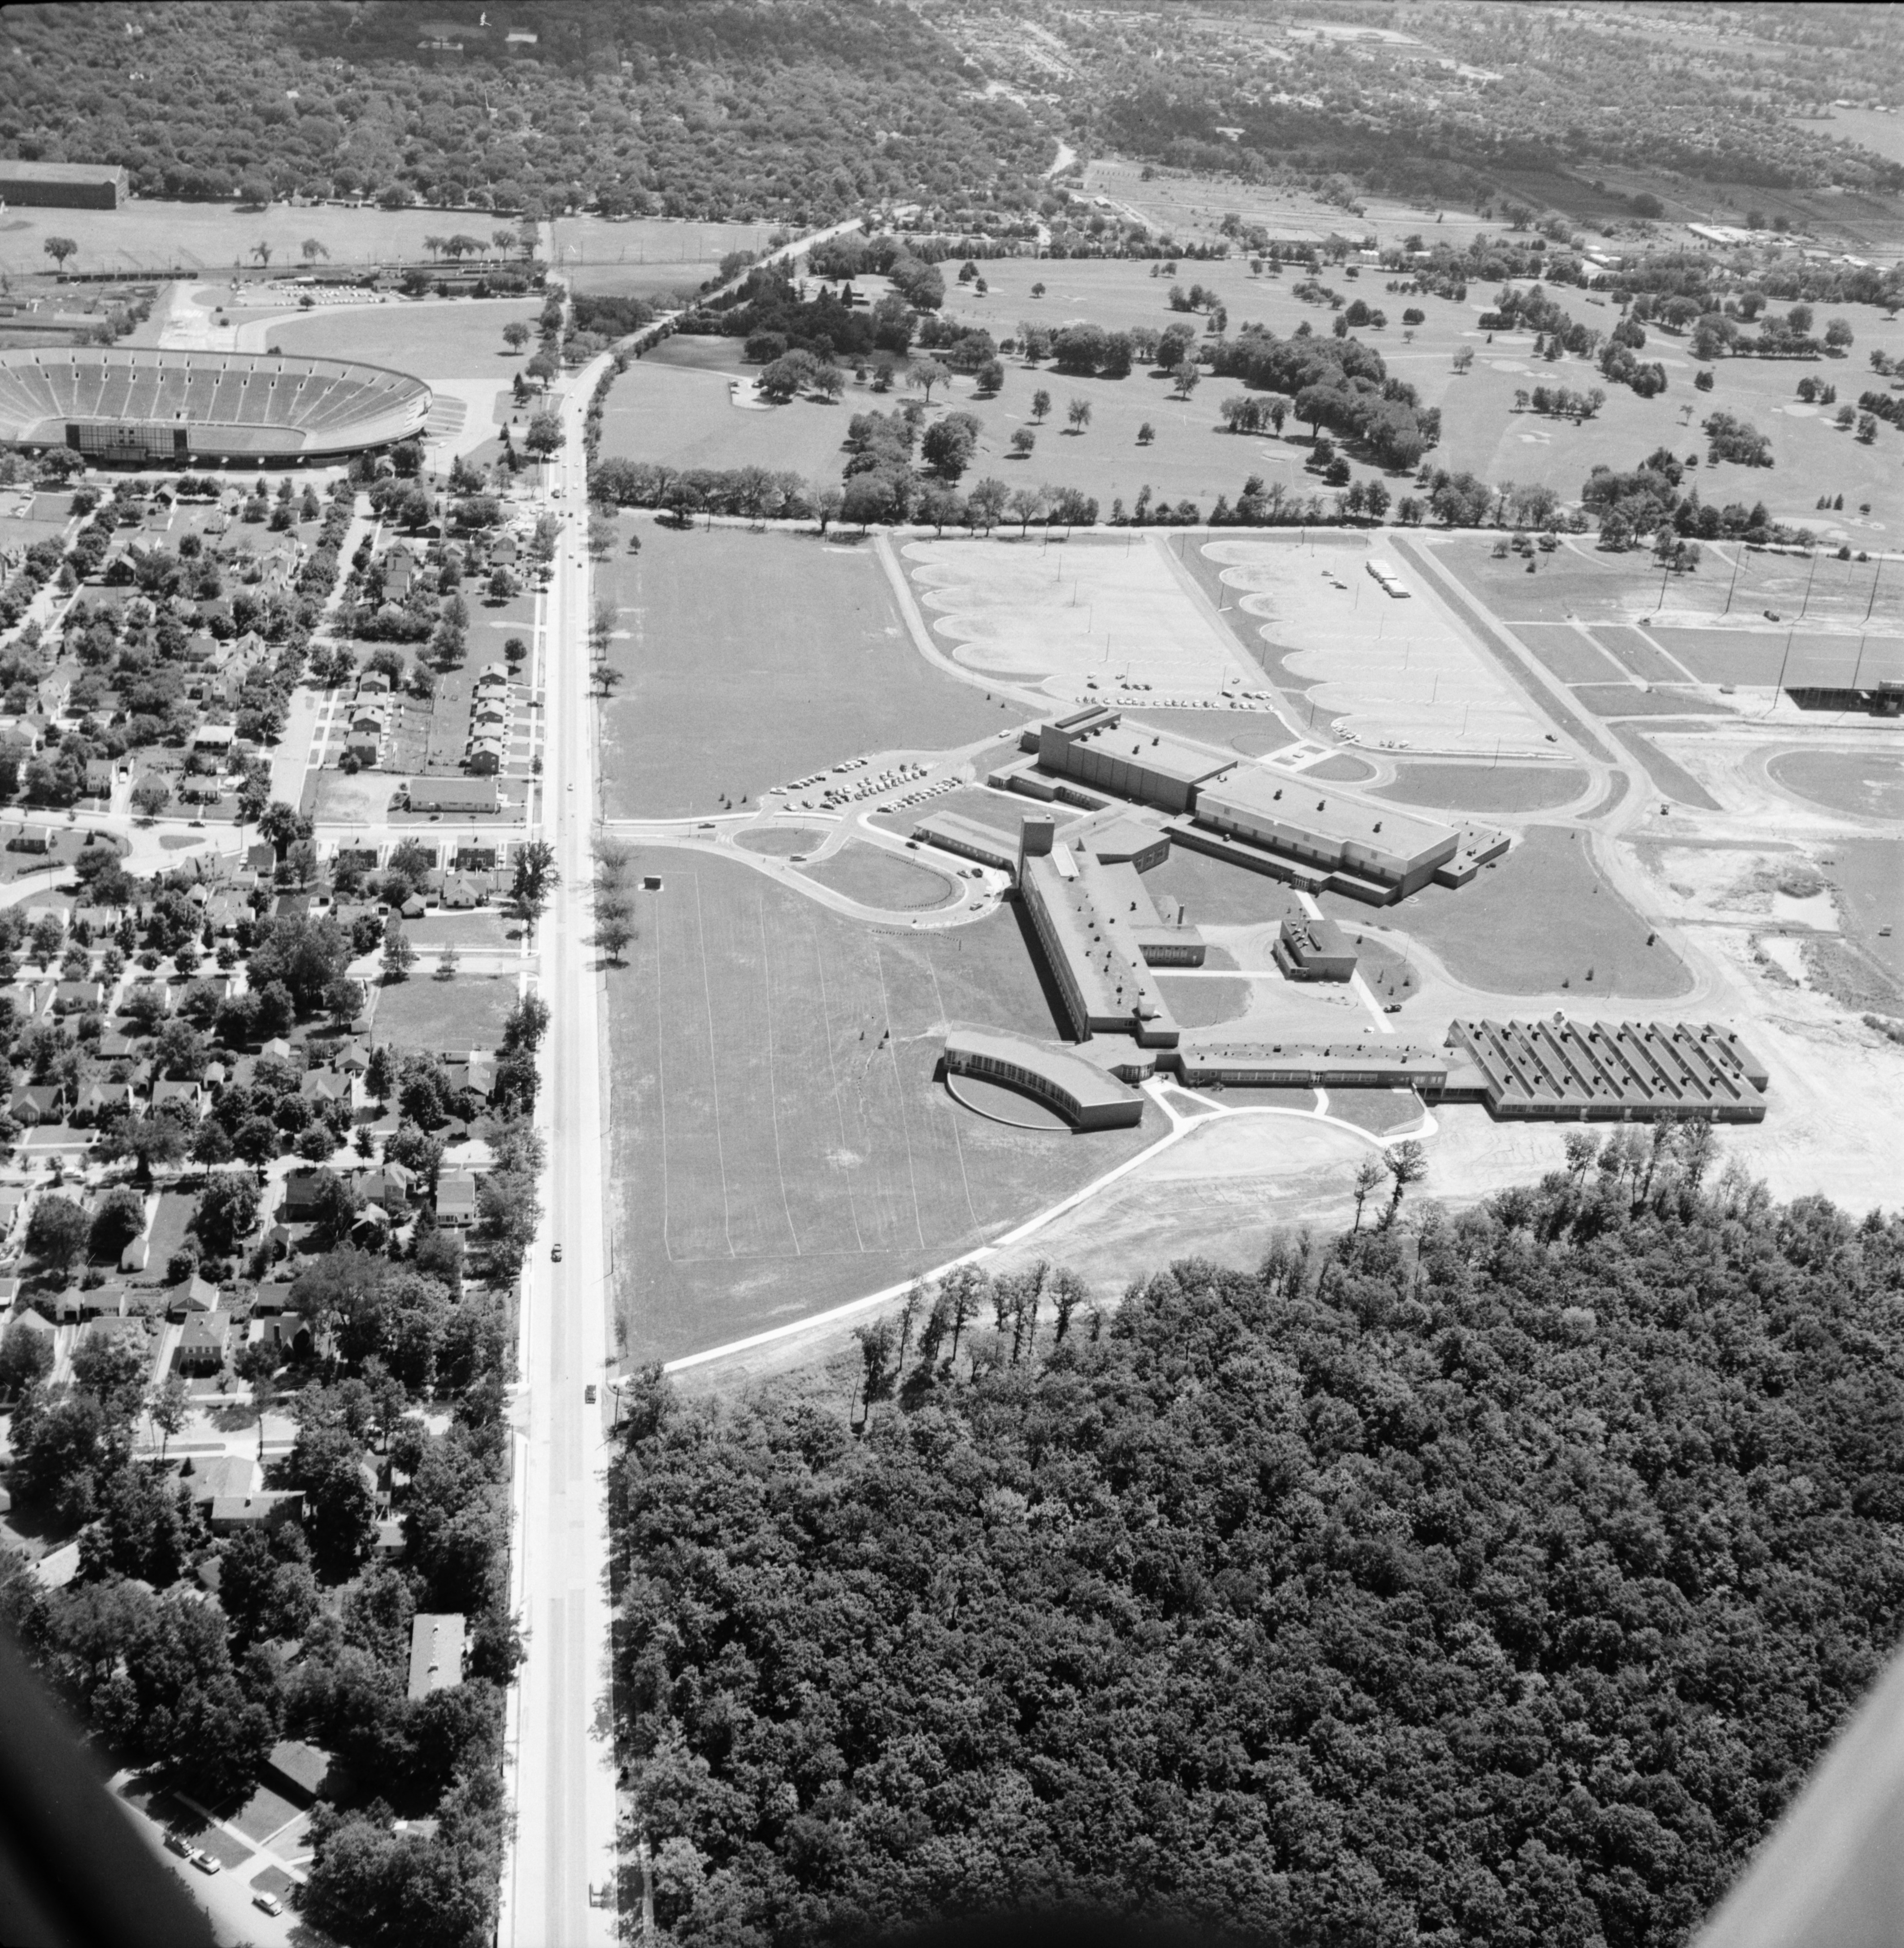 Aerial Photograph of the Widening of W. Stadium Blvd., July 1957 image